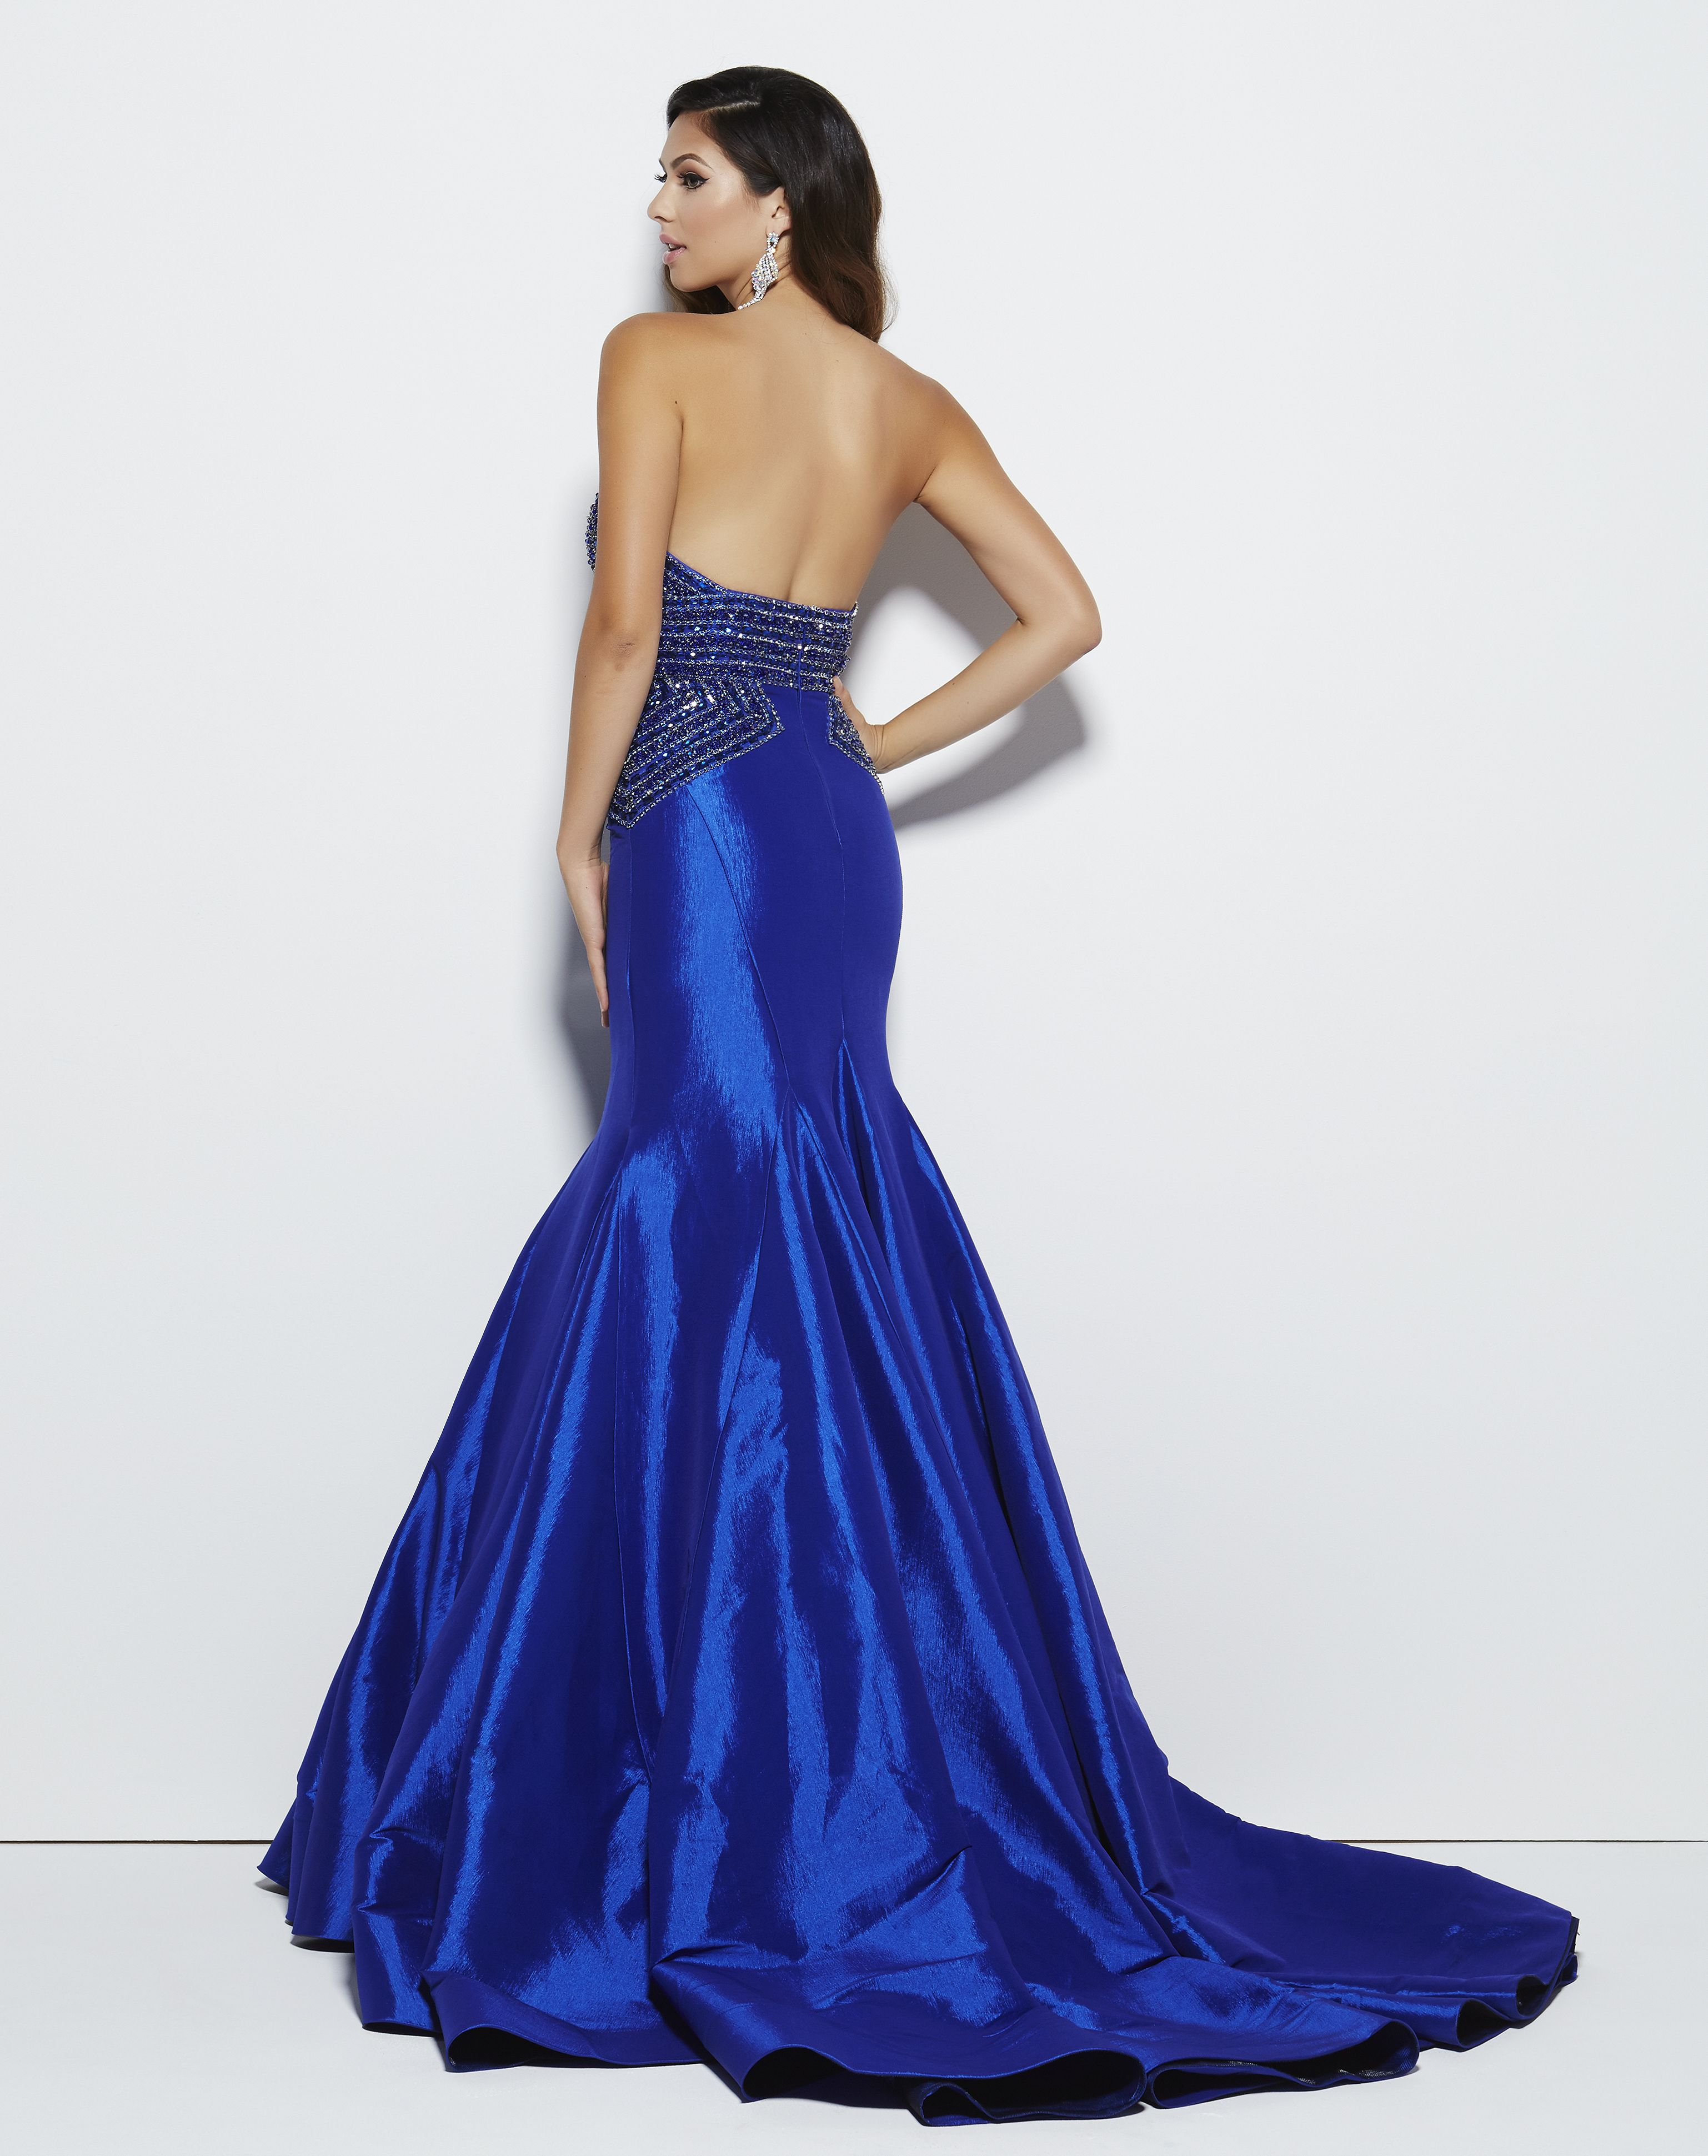 41eceb0e124b6 Talk about sweep train! This royal blue strapless Mac Duggal prom dress is  so cool. Style 62248M Royal